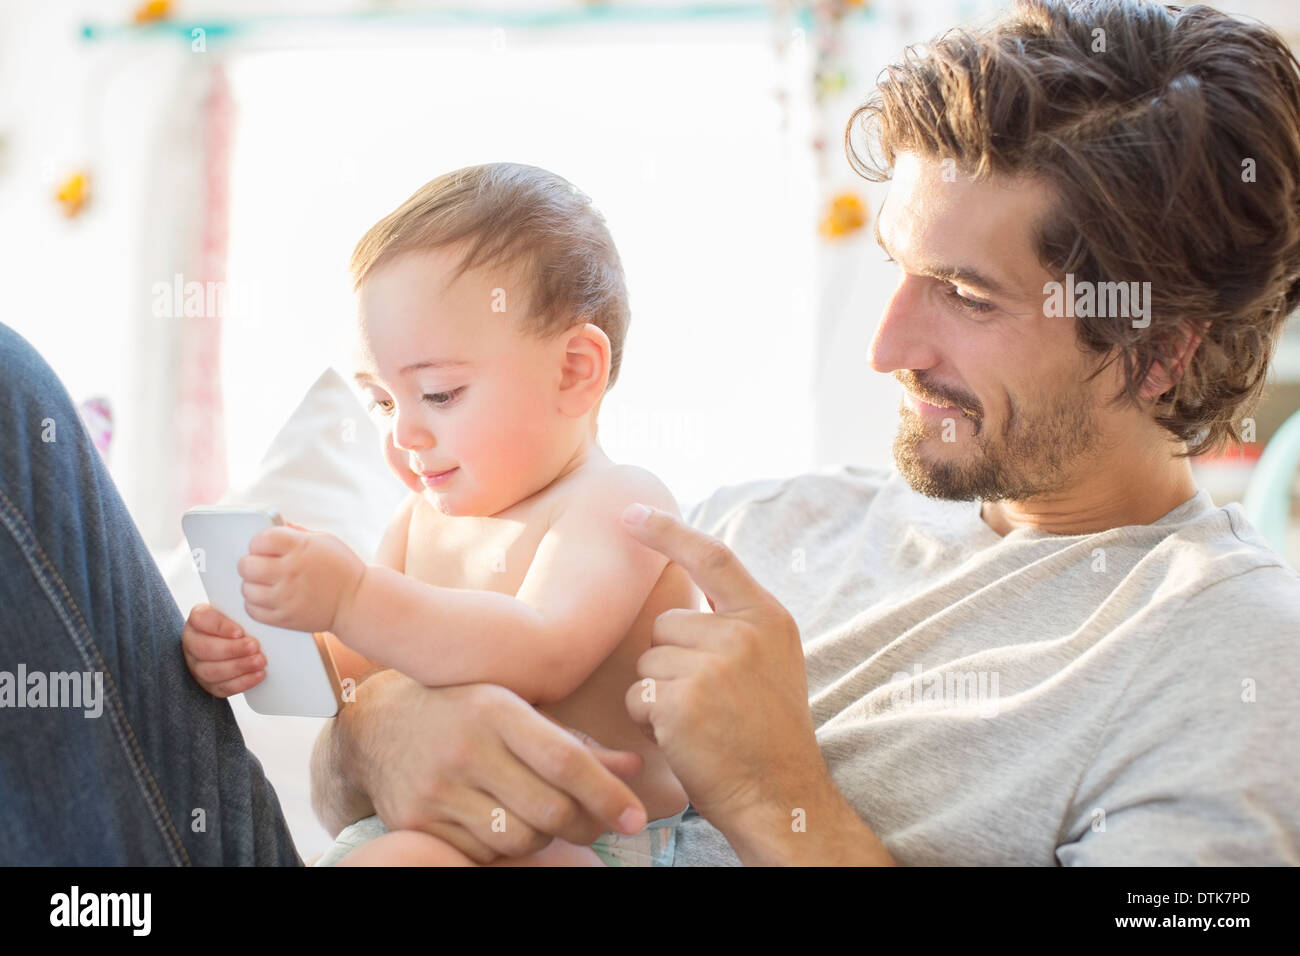 Father and baby boy playing with cell phone - Stock Image